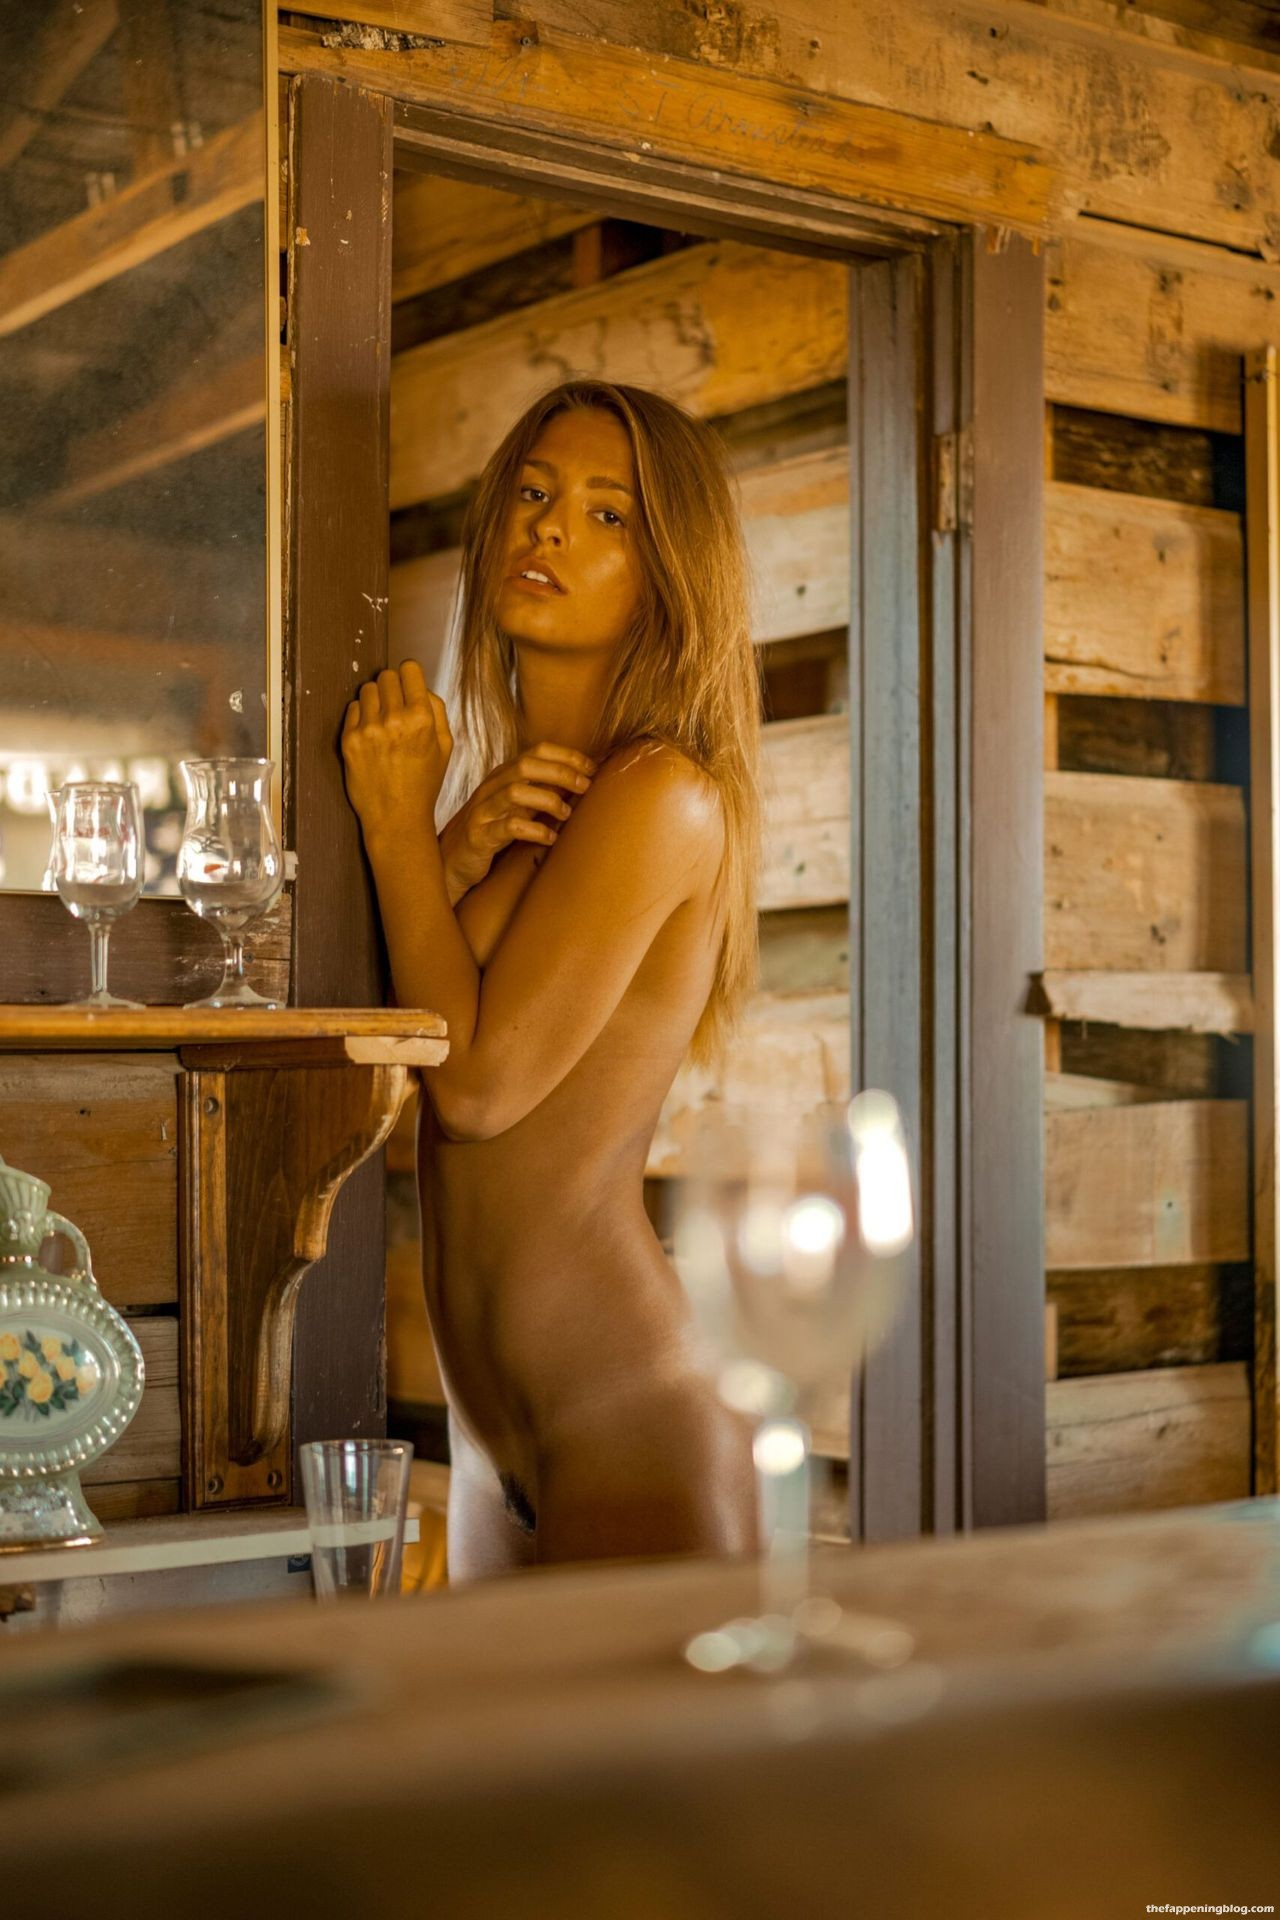 Marisa-Papen-Stunning-Naked-Body-15-scaled1-thefappeningblog.com_.jpg